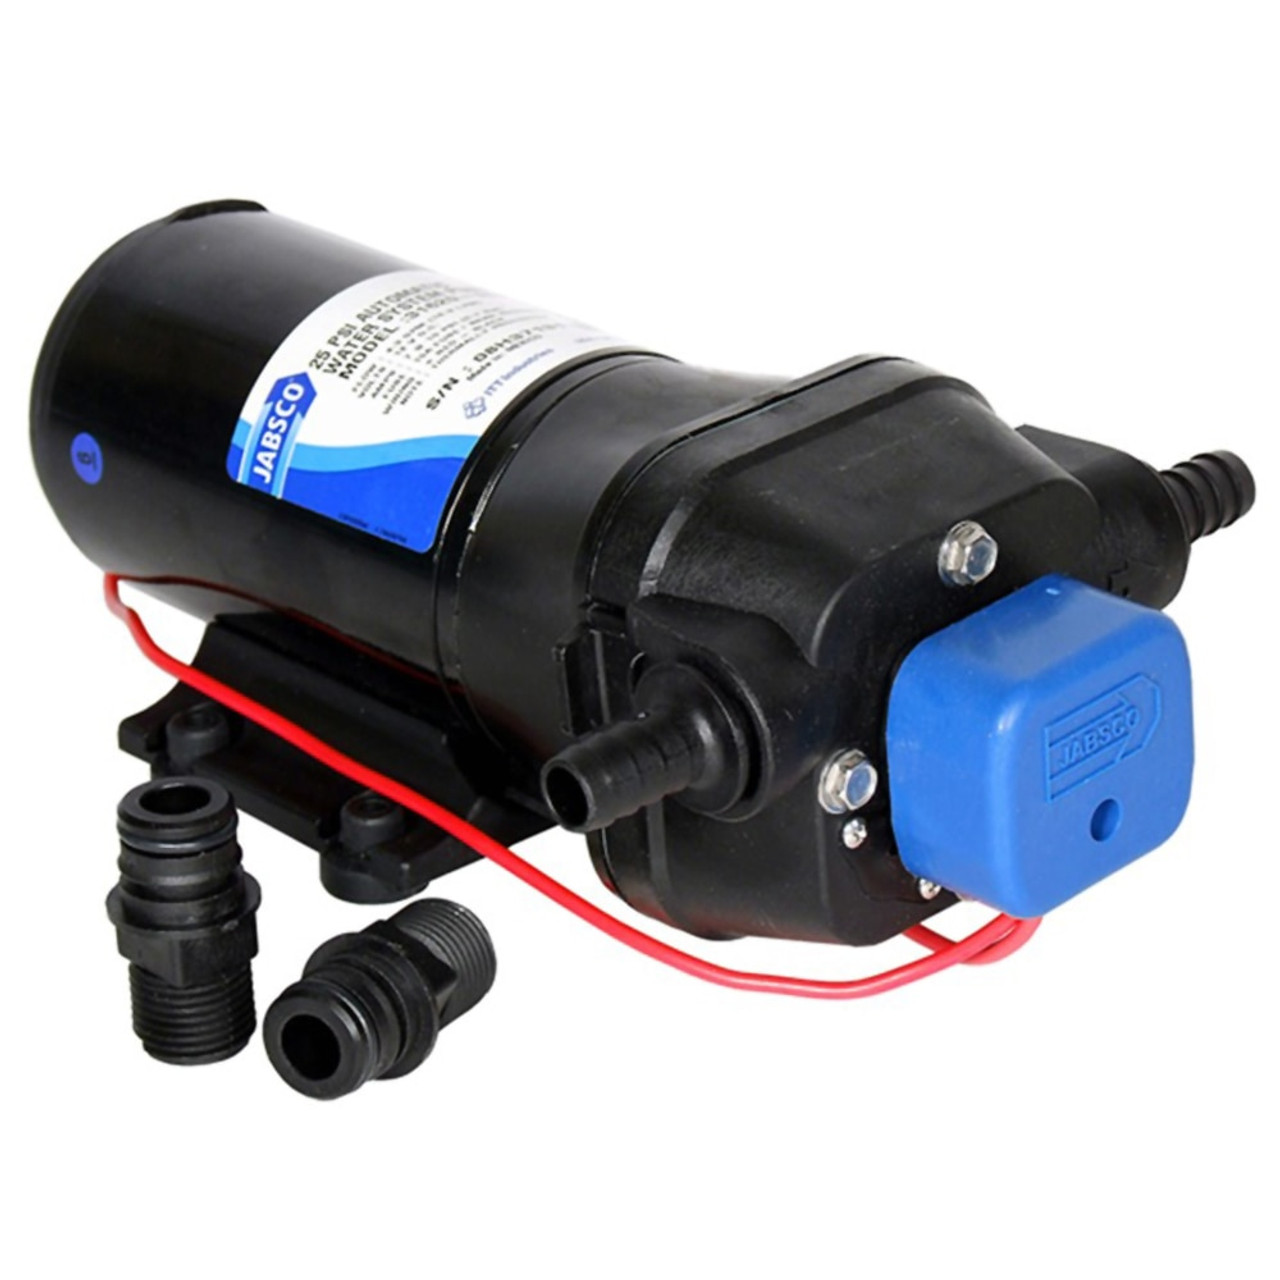 Jabsco Par Max 4 High Pressure-Controlled Pump - 12V